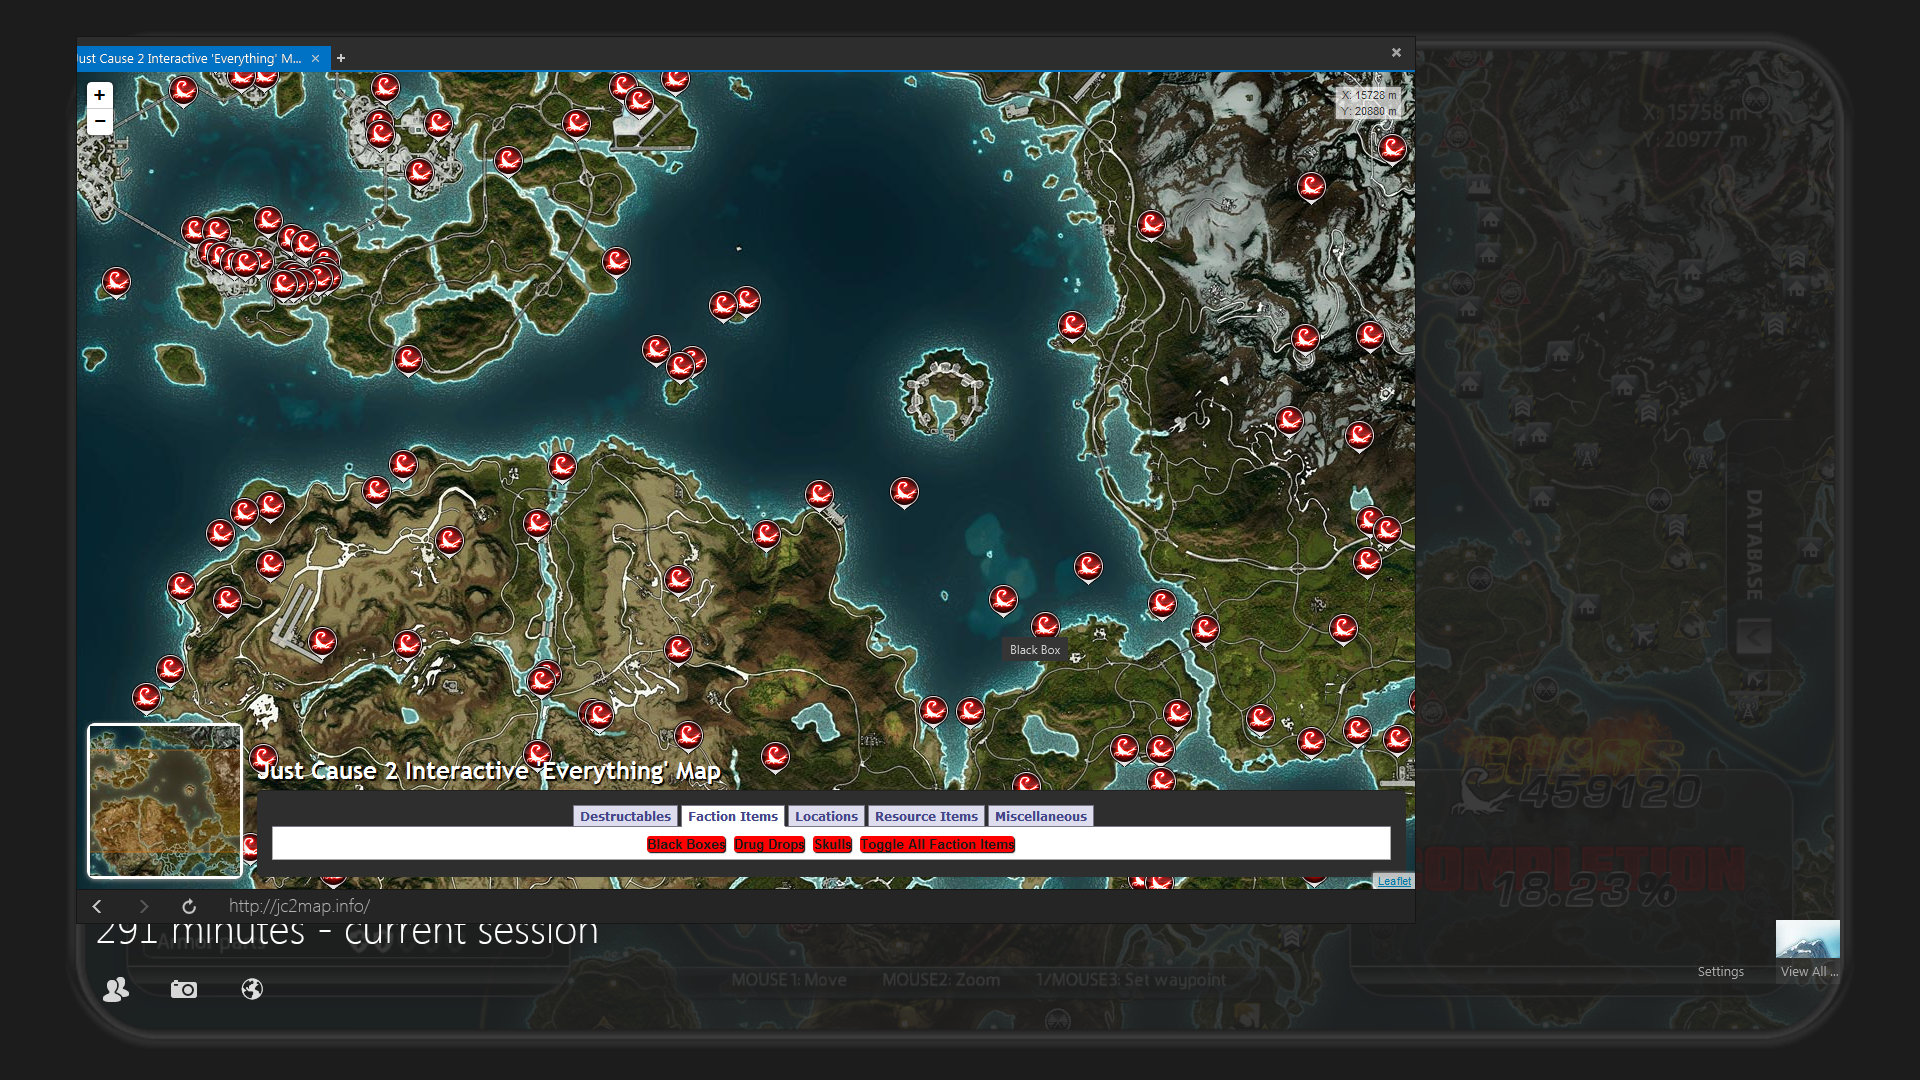 Mapa Just Cause 3.Steam Community Guide Just Cause 2 Interactive